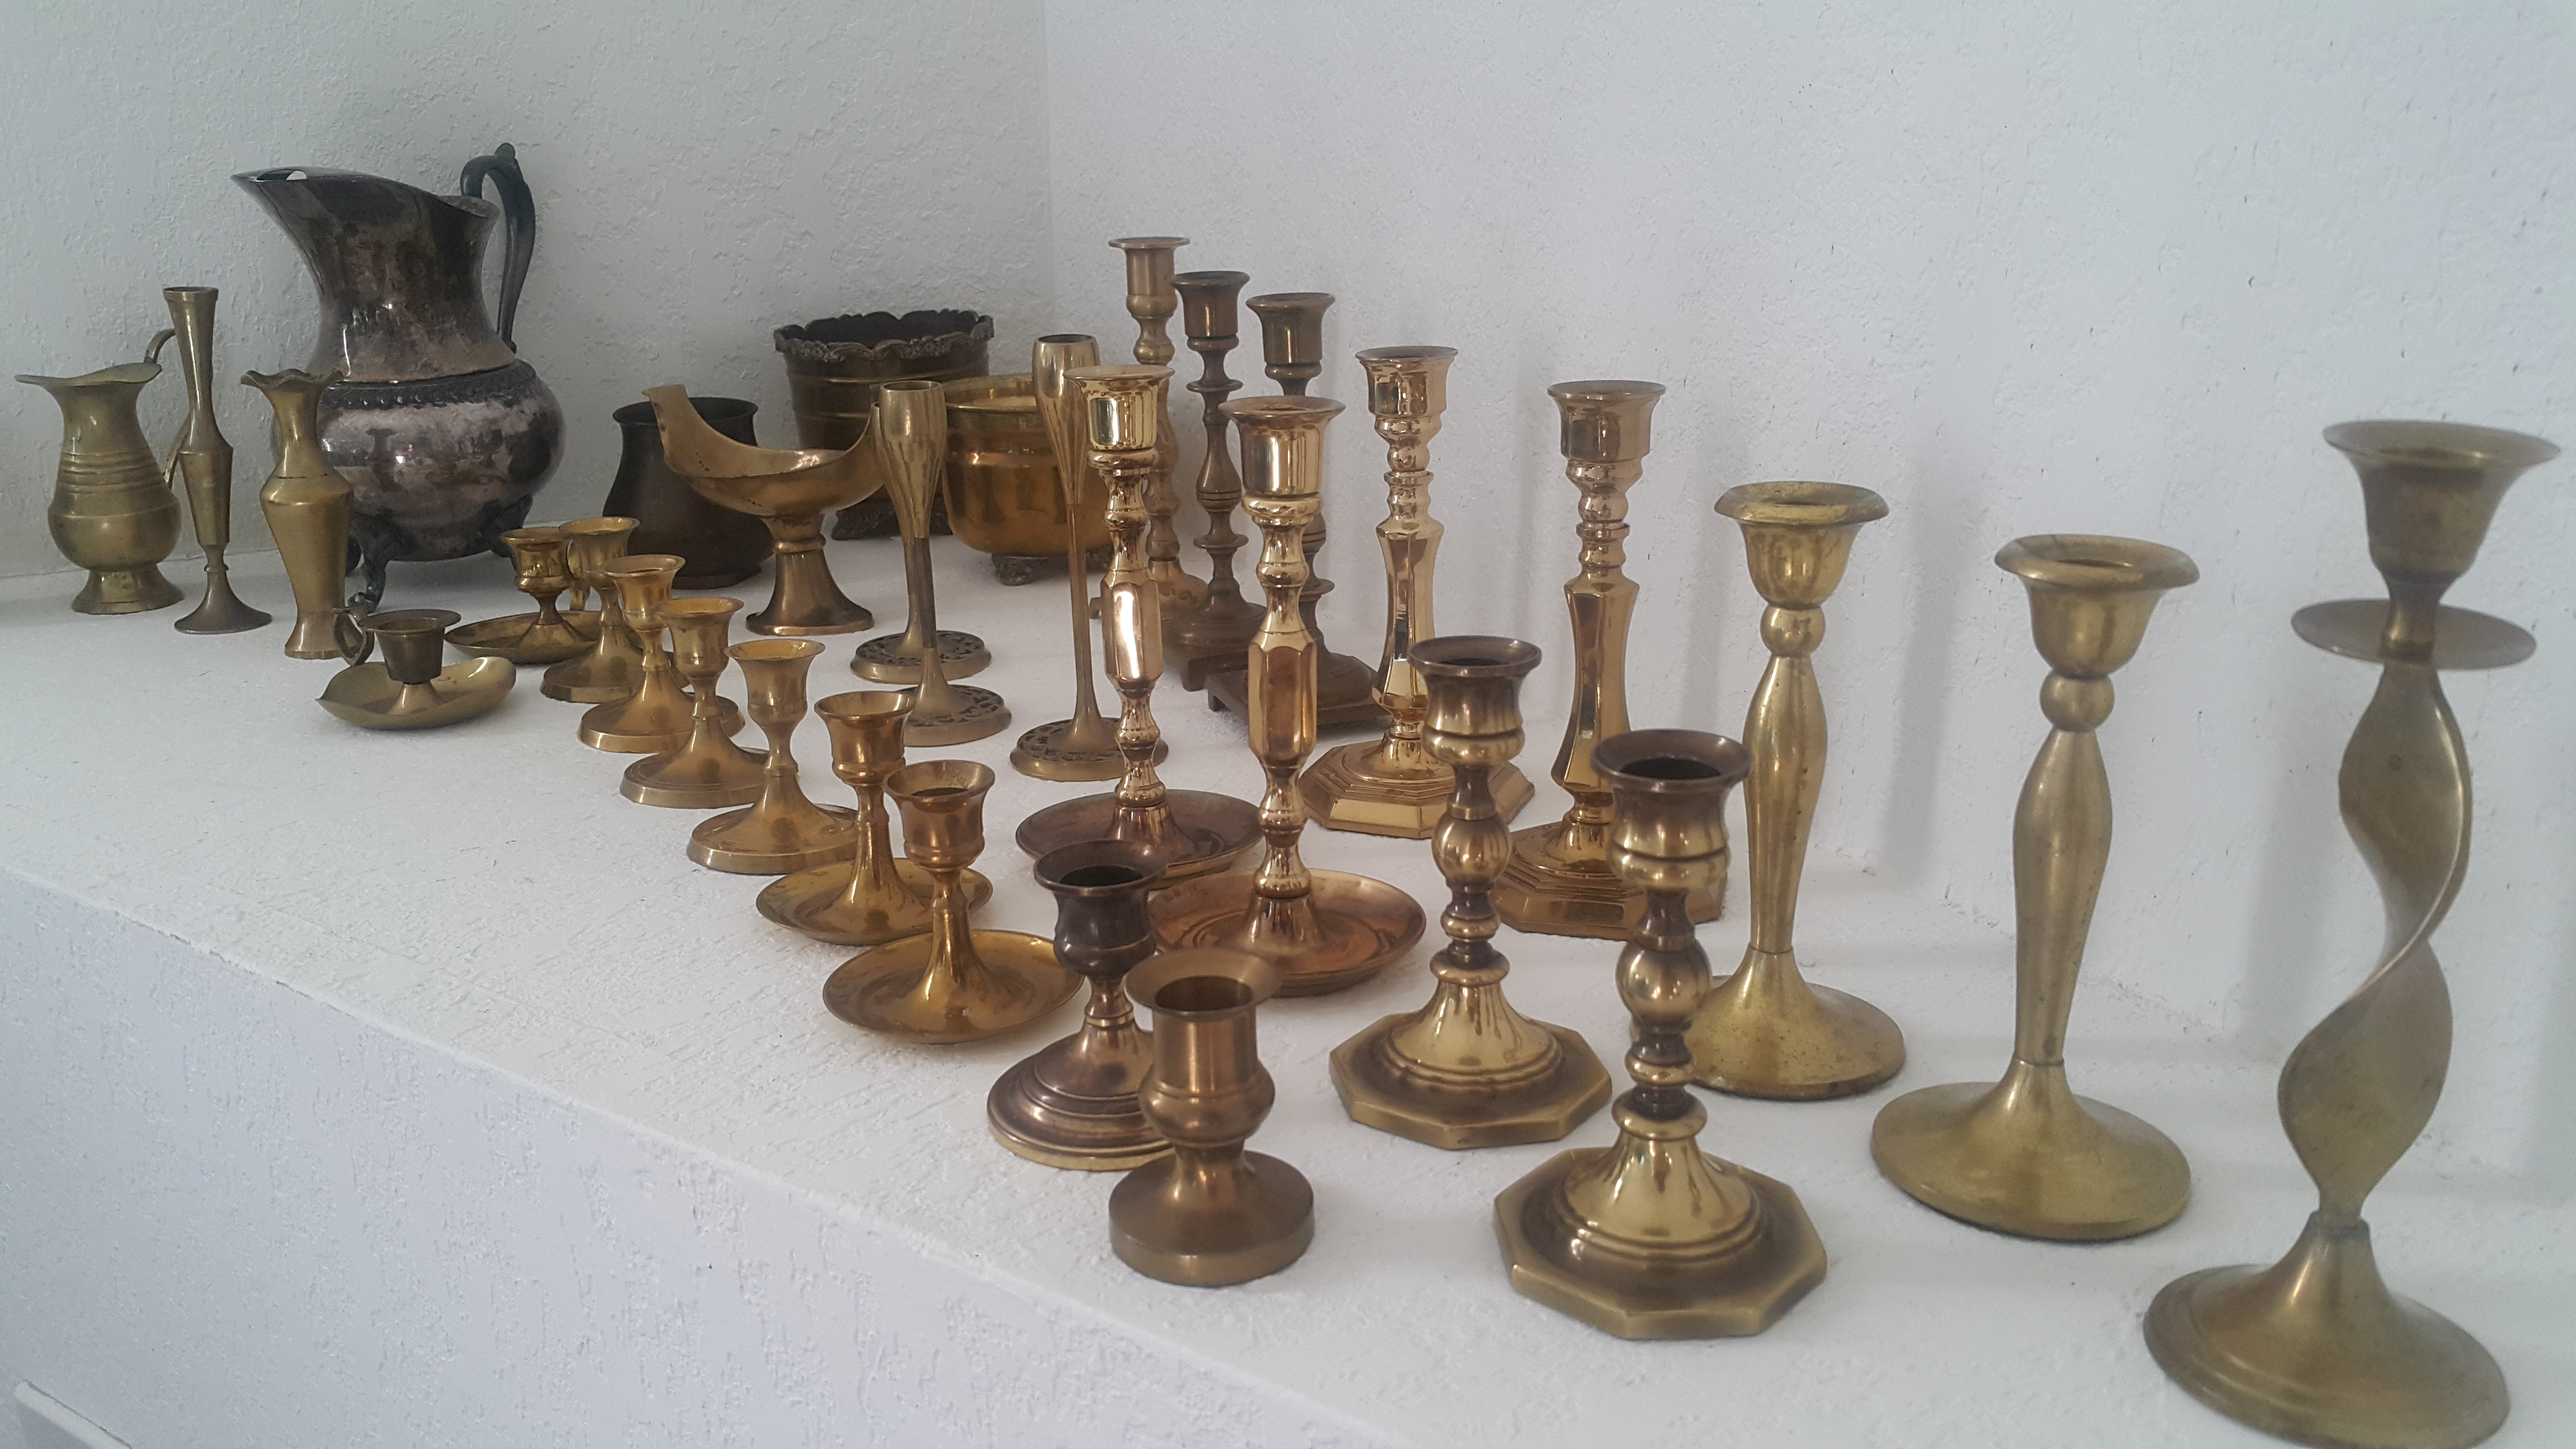 Lot of Vintage Decorative Brass Candlestick Holders and Planters